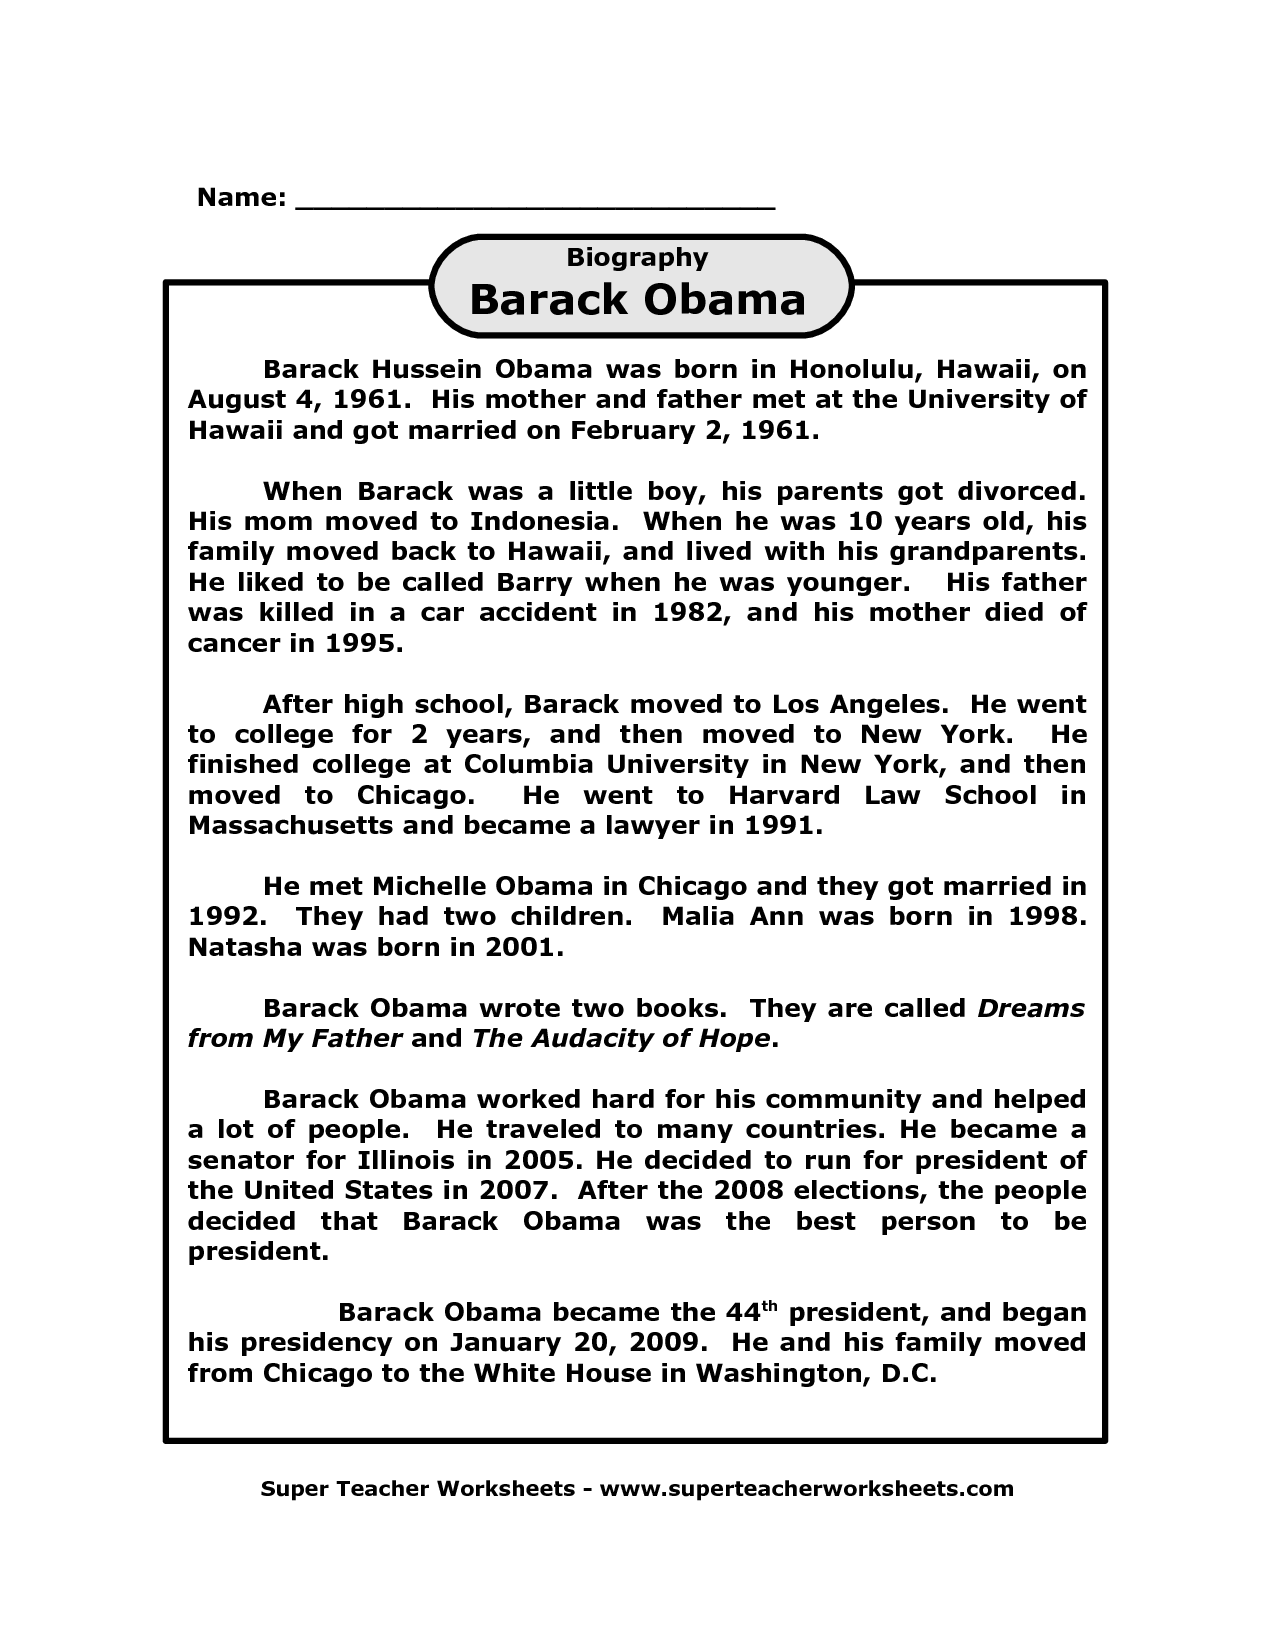 Barak Obama Worksheet